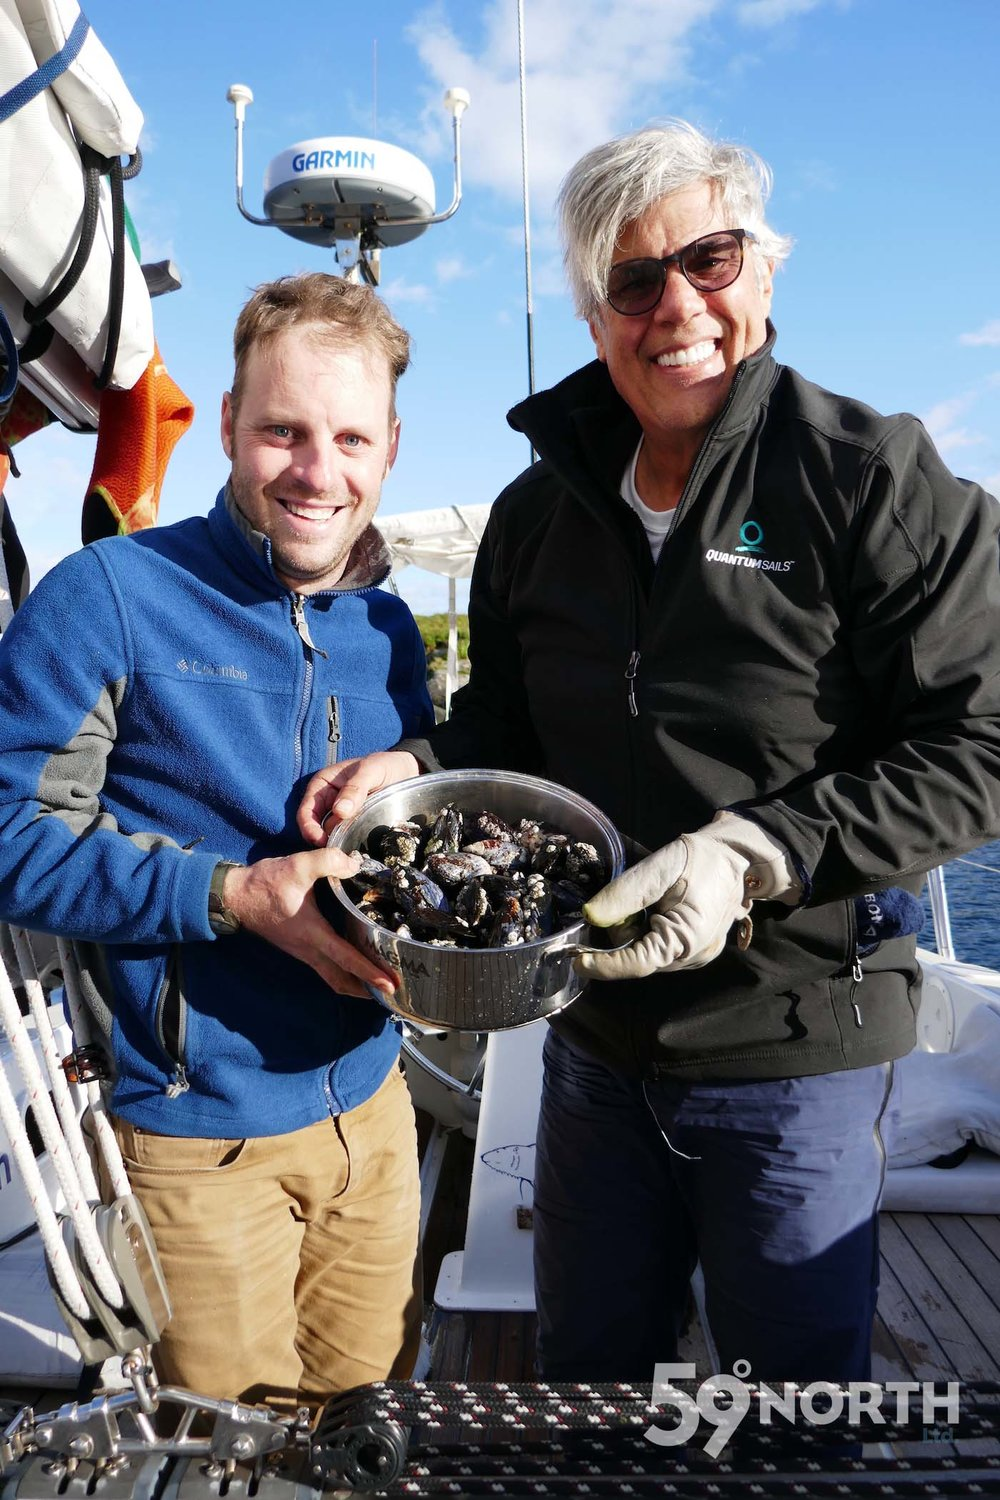 Hand picked mussels by James, Andy & Will. Cleaned by Karl & Steve! Team work aboard, and amazing freshly cooked mussels for dinner!  Loch Scavaig! Leg 8, 2017: Sweden to Scotland 59-north.com